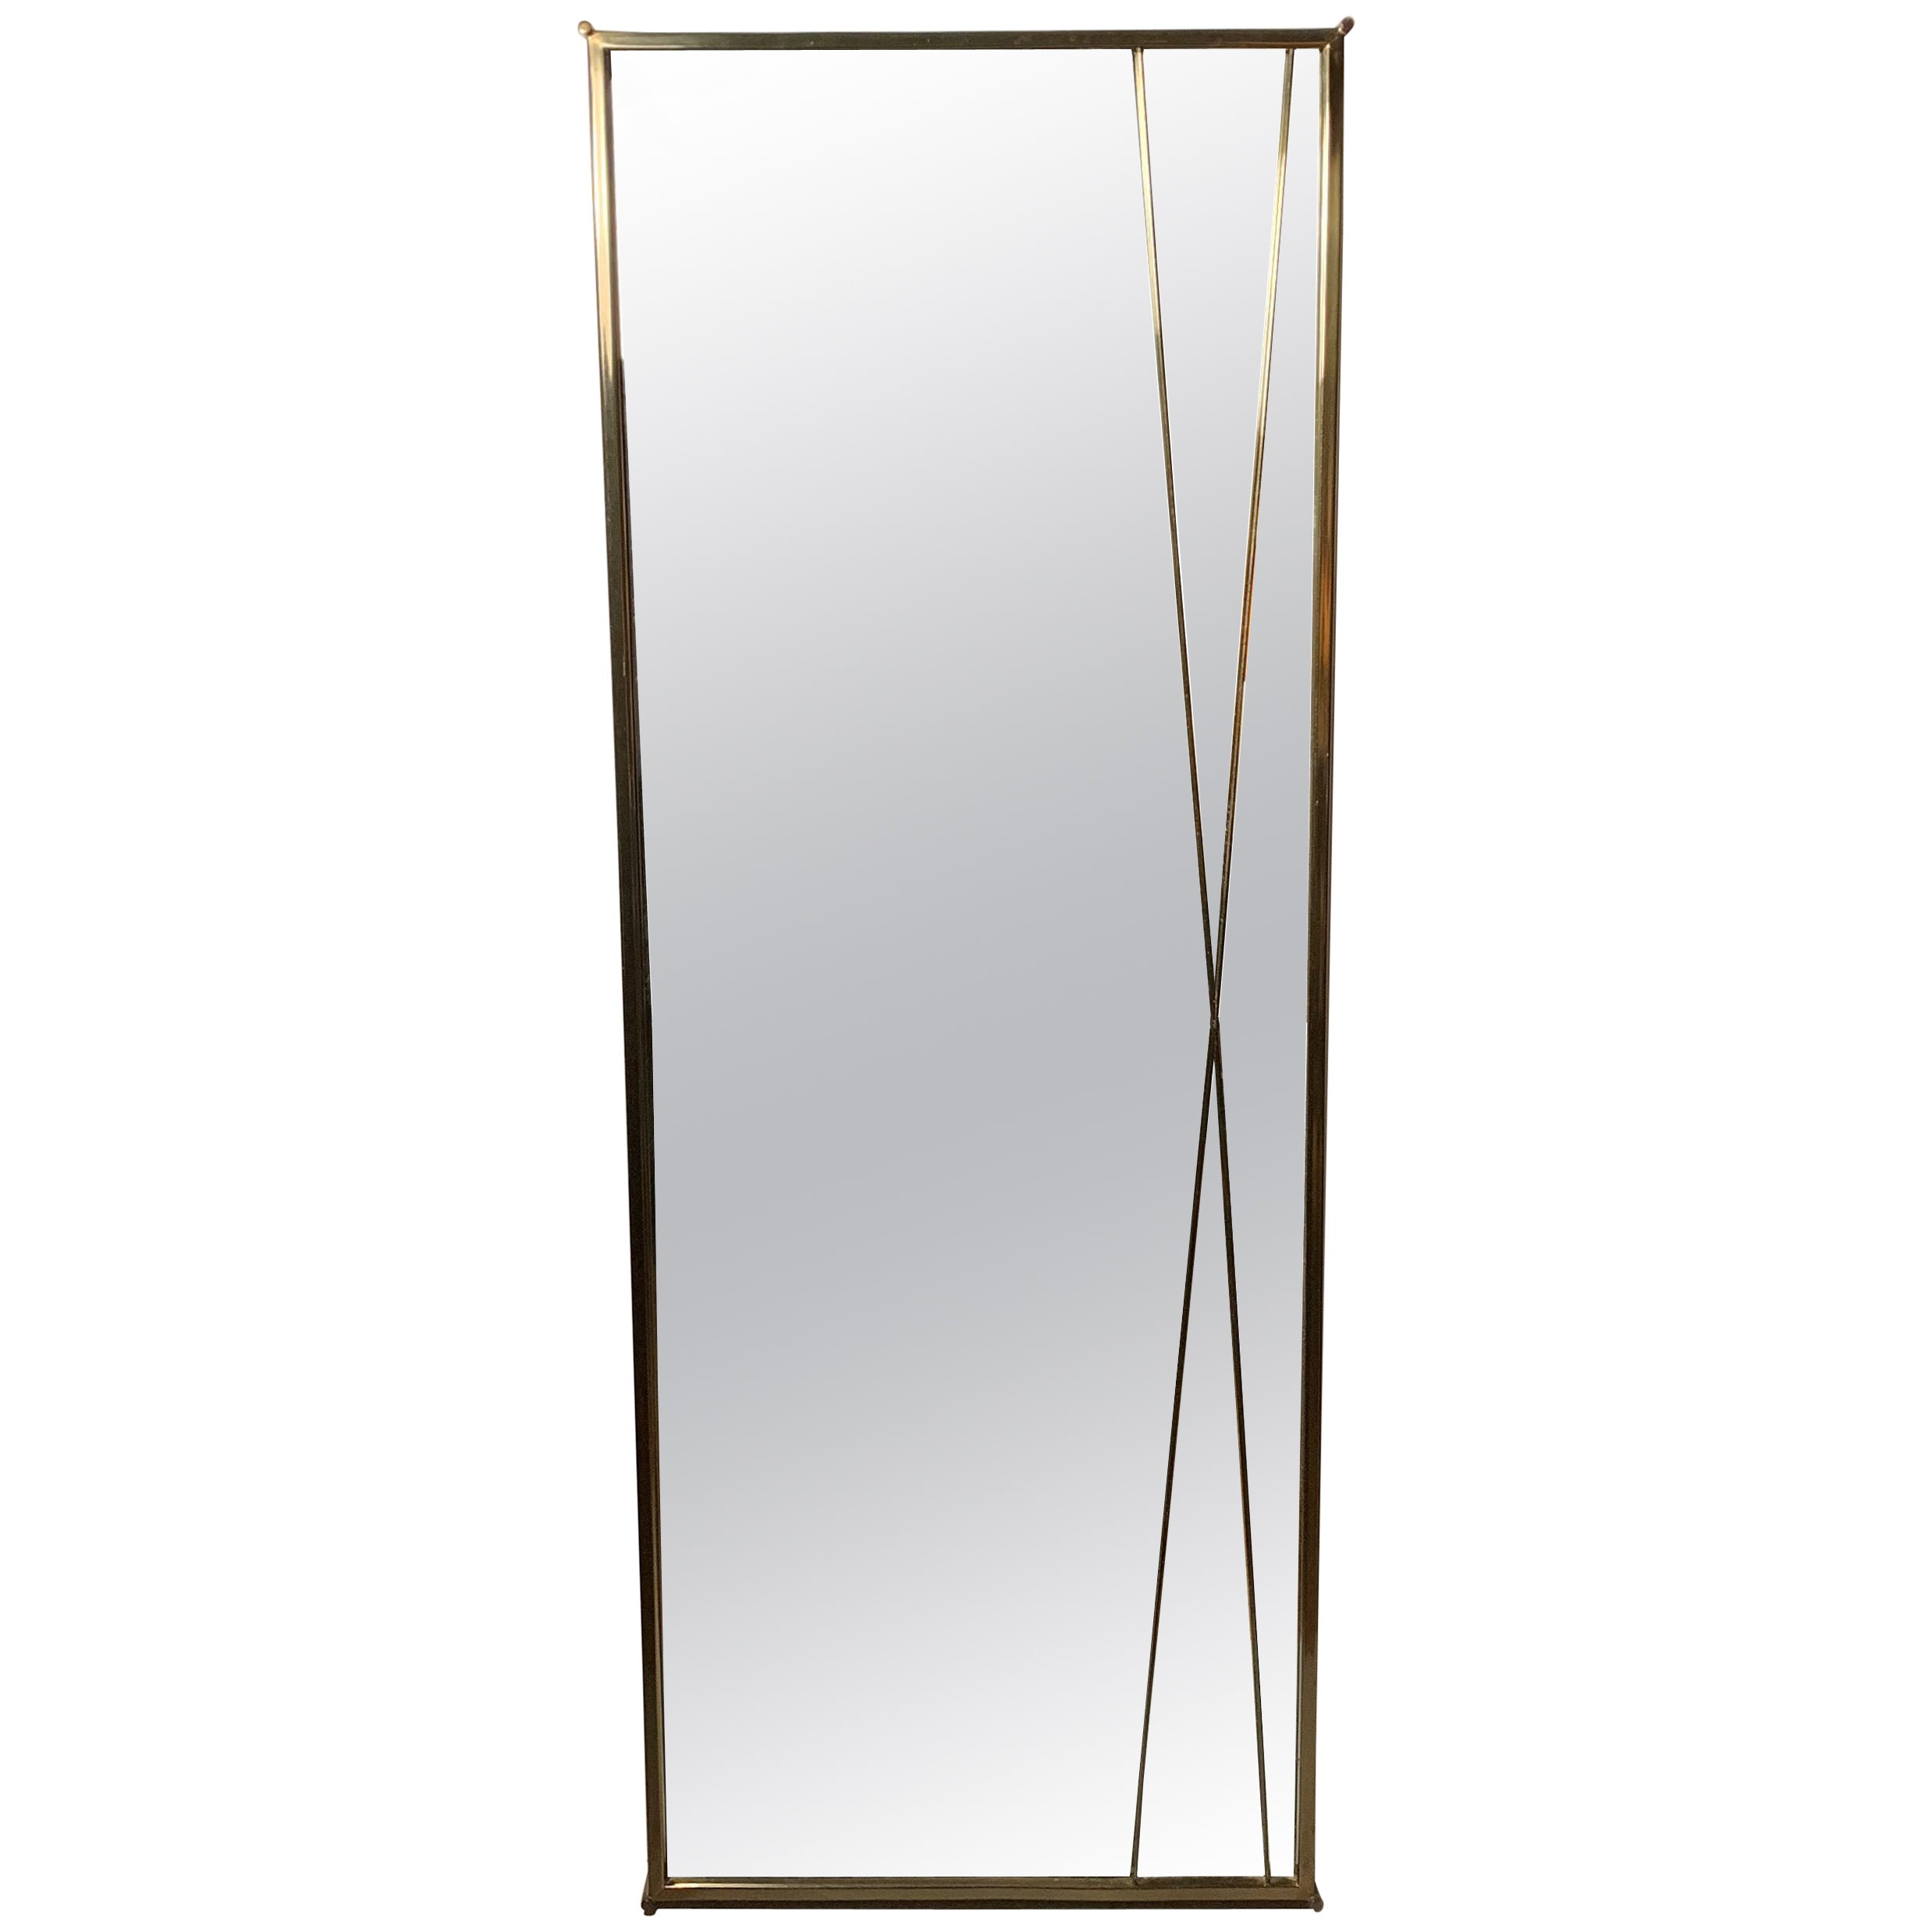 Paul McCobb Brass x Wall Mirror